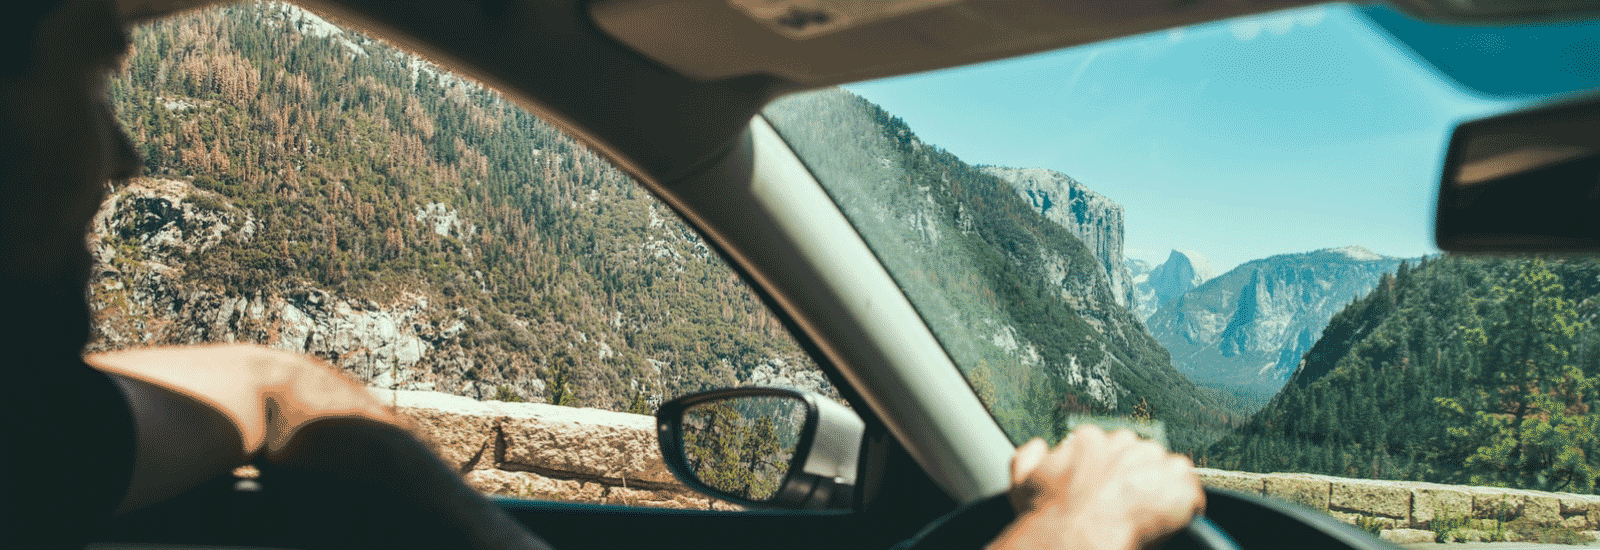 Pro Tip - To map your optimal RV route, consider using the Good Sam Trip Planner as your national park road trip planner; it provides map filters for RV preferences such as low clearance and toll avoidance.